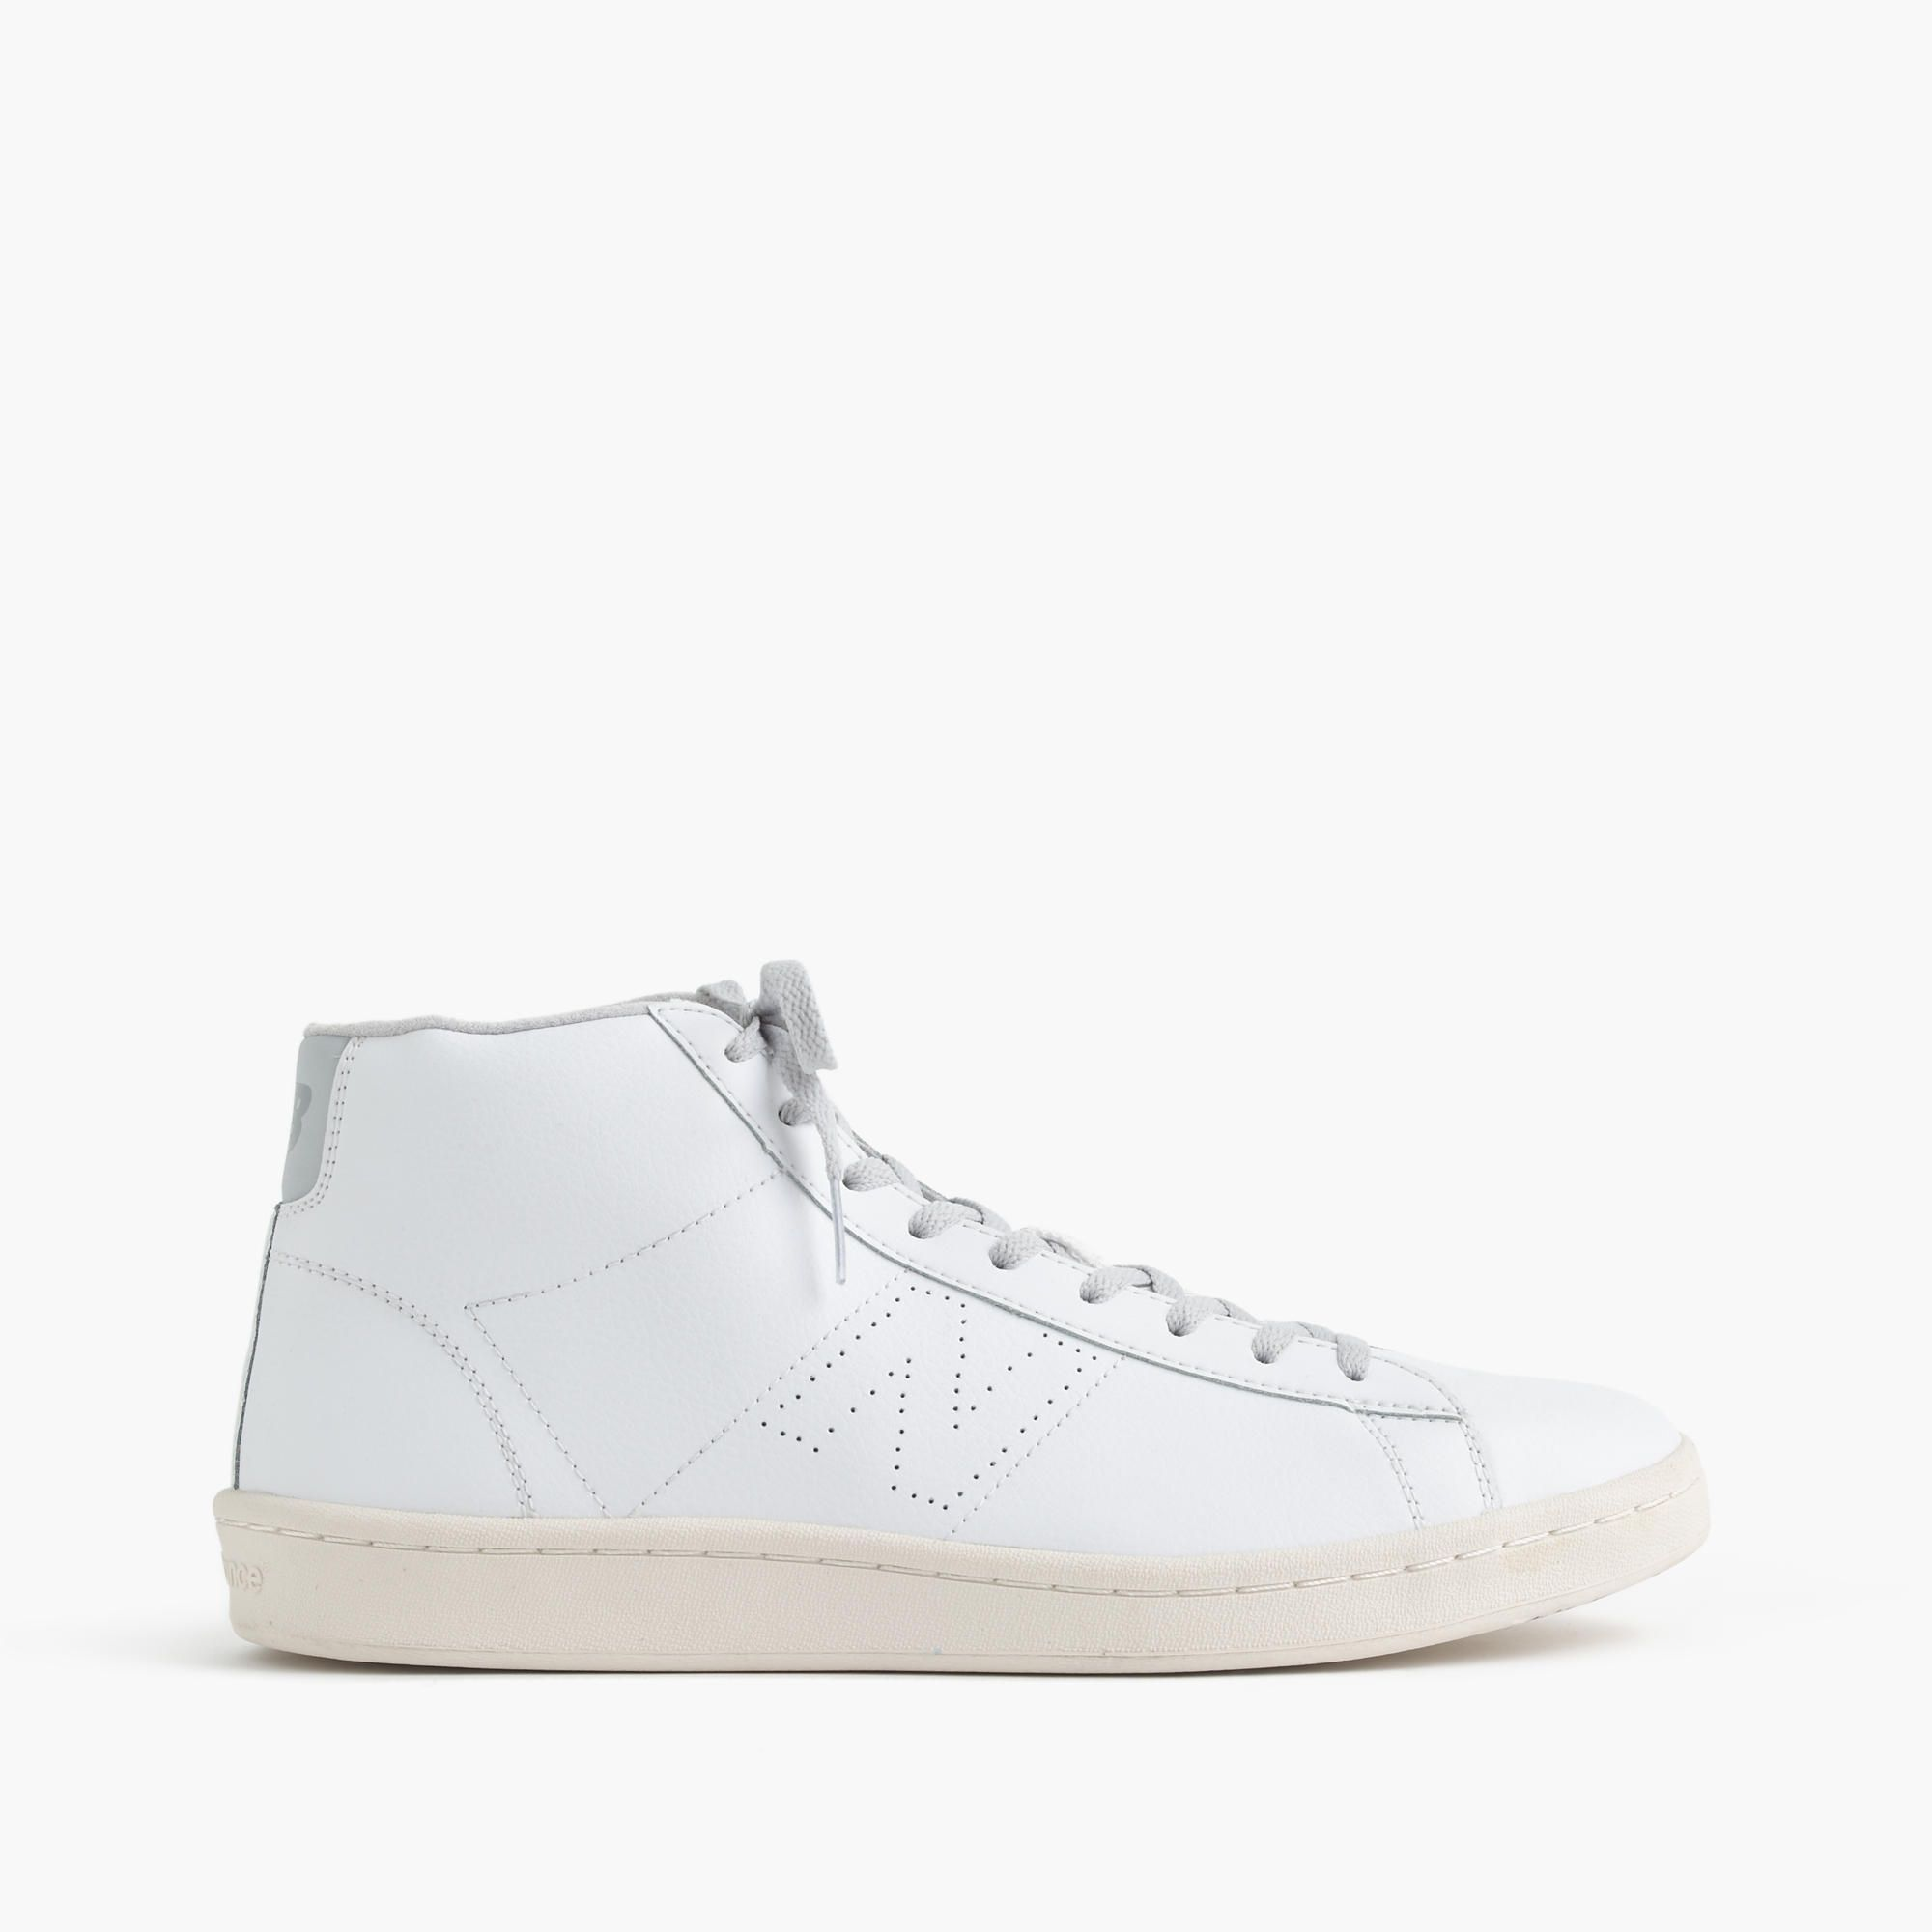 516397900045 New Balance® for J.Crew 891 leather sneakers : sneakers | J.Crew ...